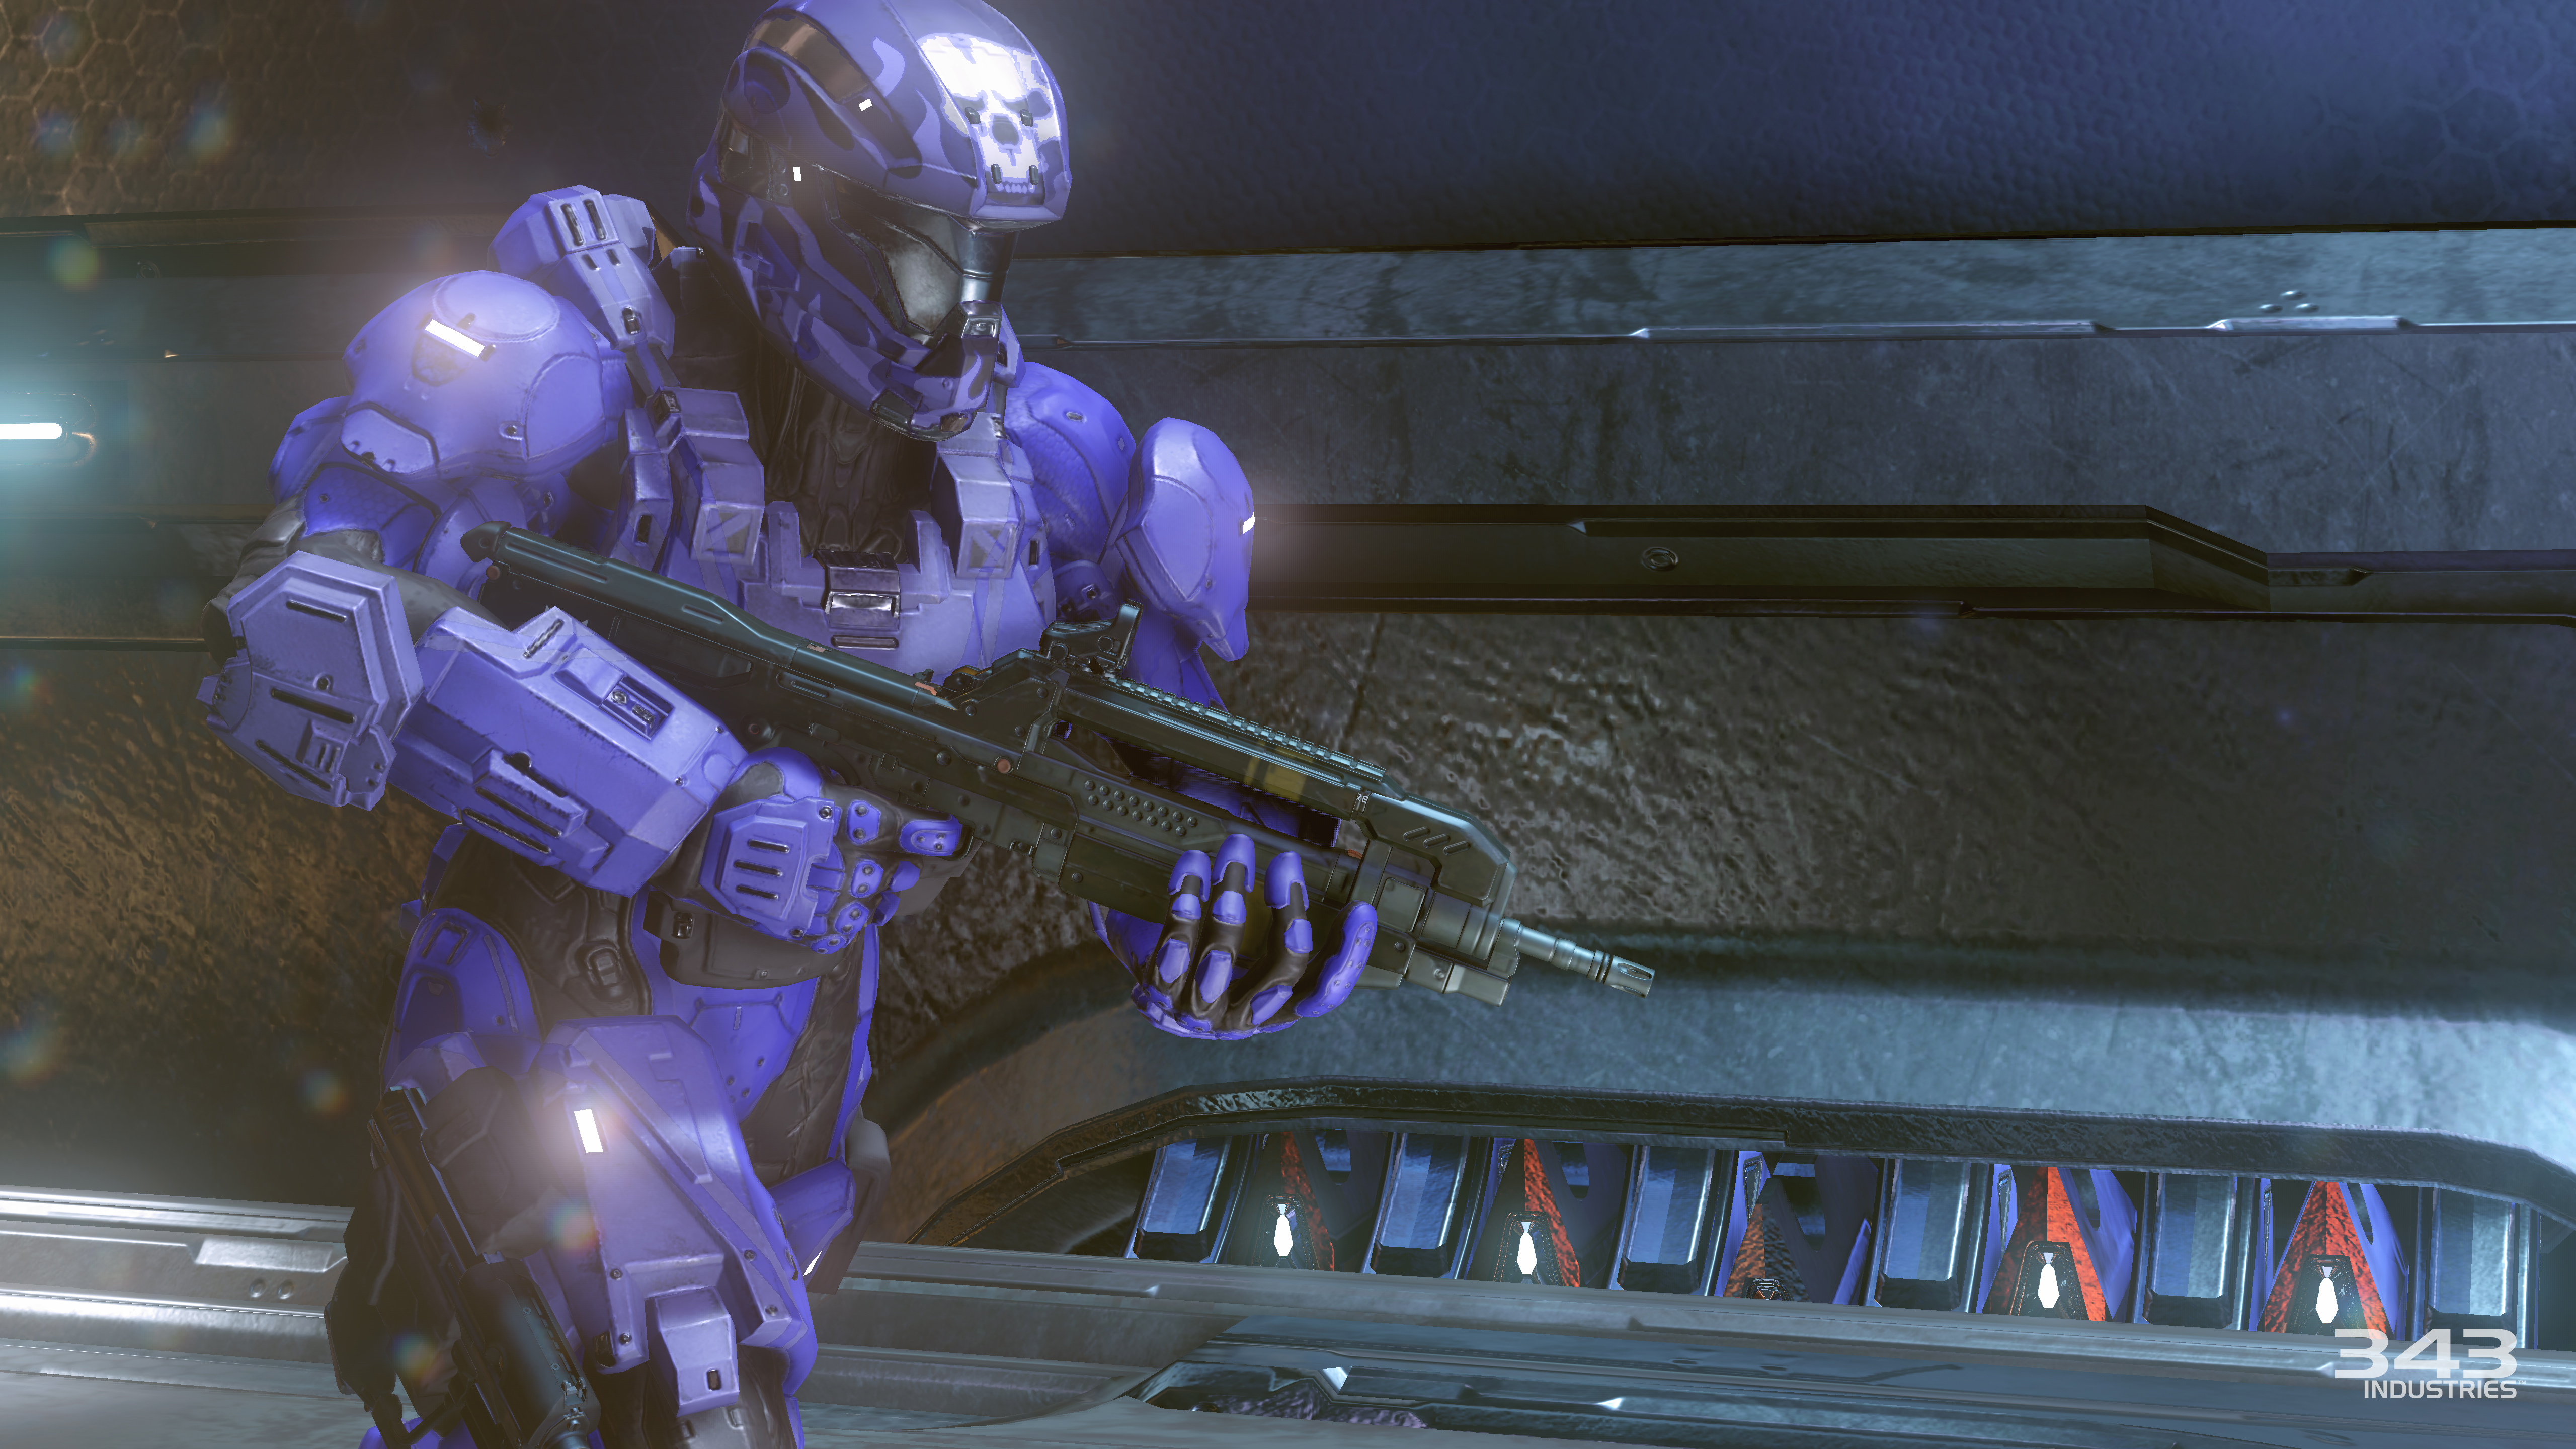 Halo 5: Guardians Multiplayer – Empire | Podtacular